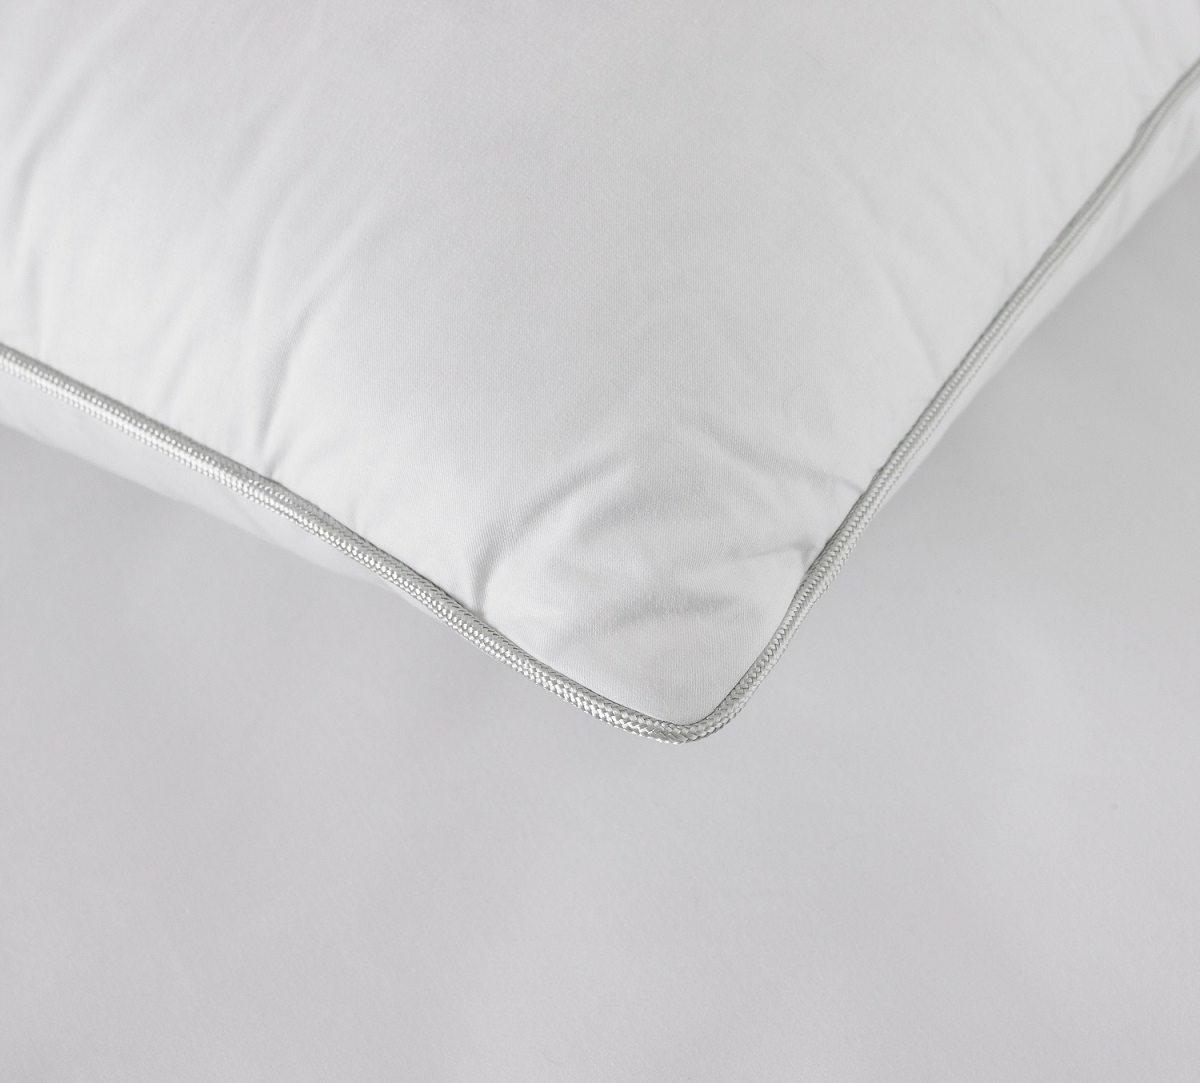 arden_silver_piped_pillow_2-1500_6.jpg